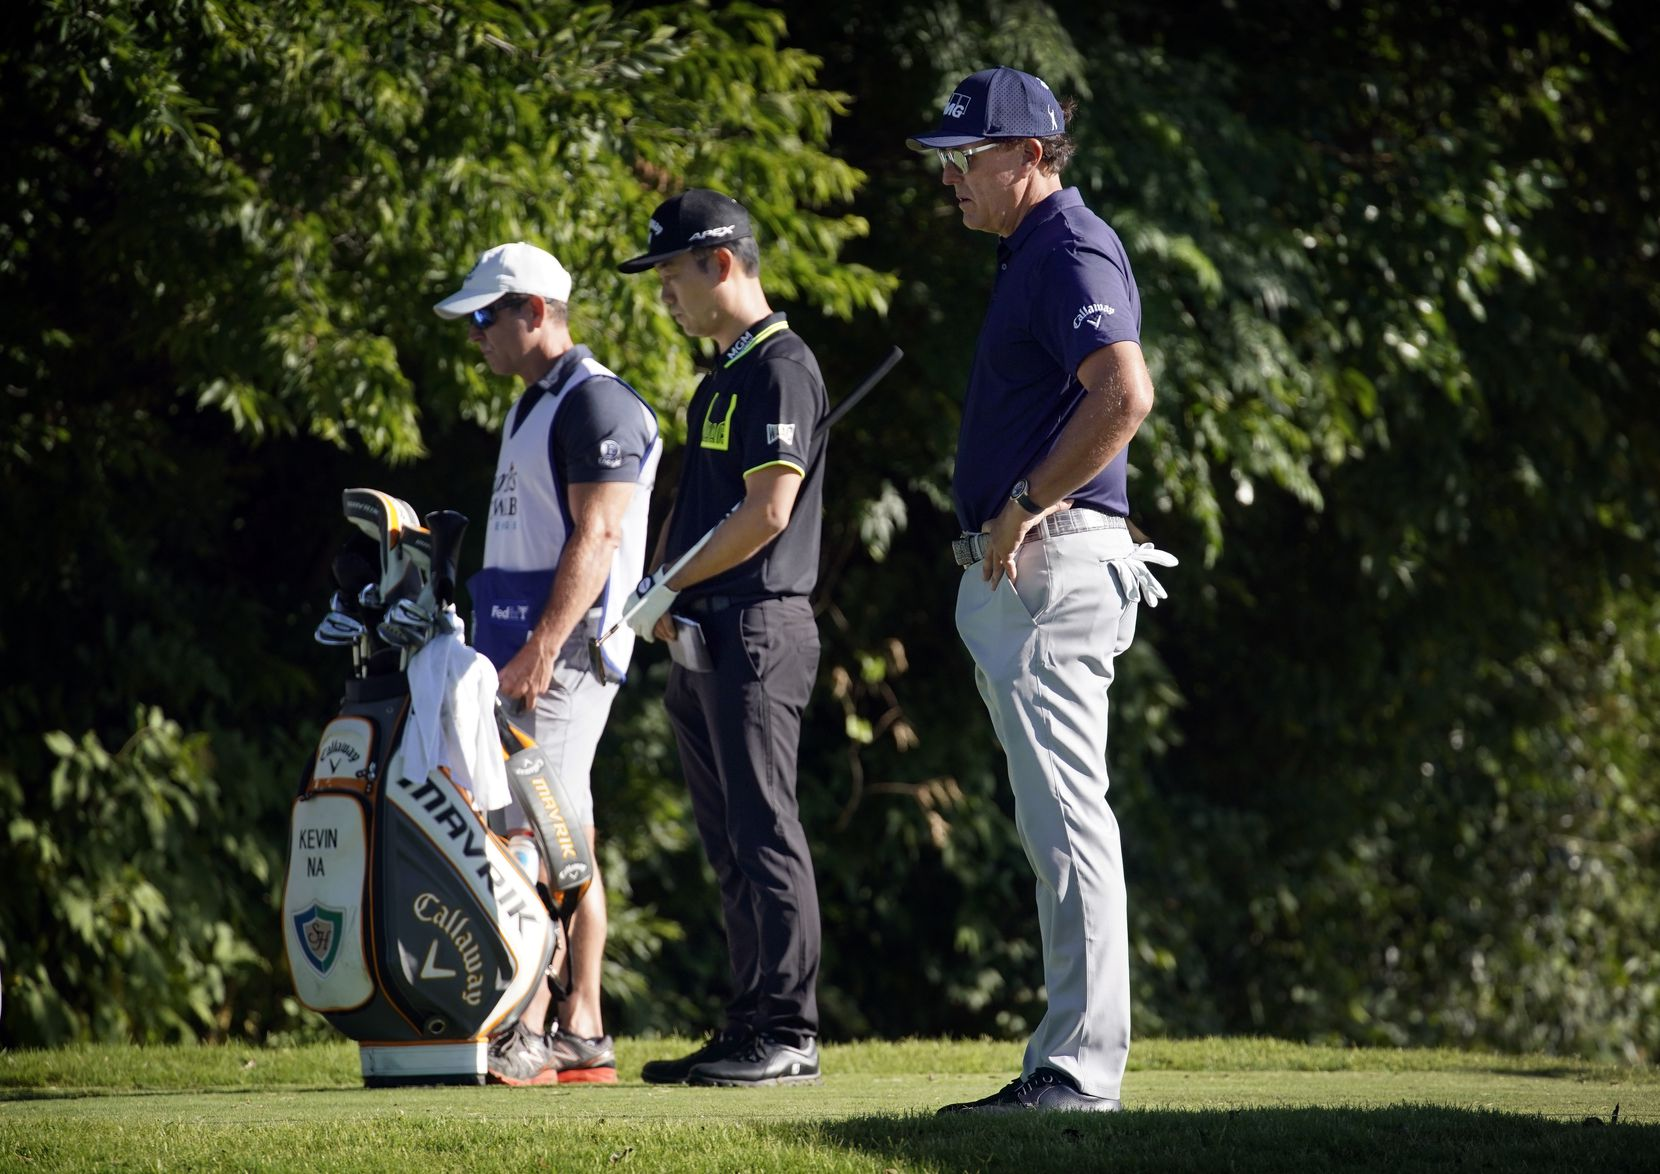 PGA golfers Phil Mickelson (right) and Kevin Na (second from right) observe a minute of silence at 8:46 a.m. for George Floyd during the opening round of the Charles Schwab Challenge at the Colonial Country Club in Fort Worth, Thursday, June 11, 2020. Floyd died in custody as a Minneapolis police officer knelt on his neck.